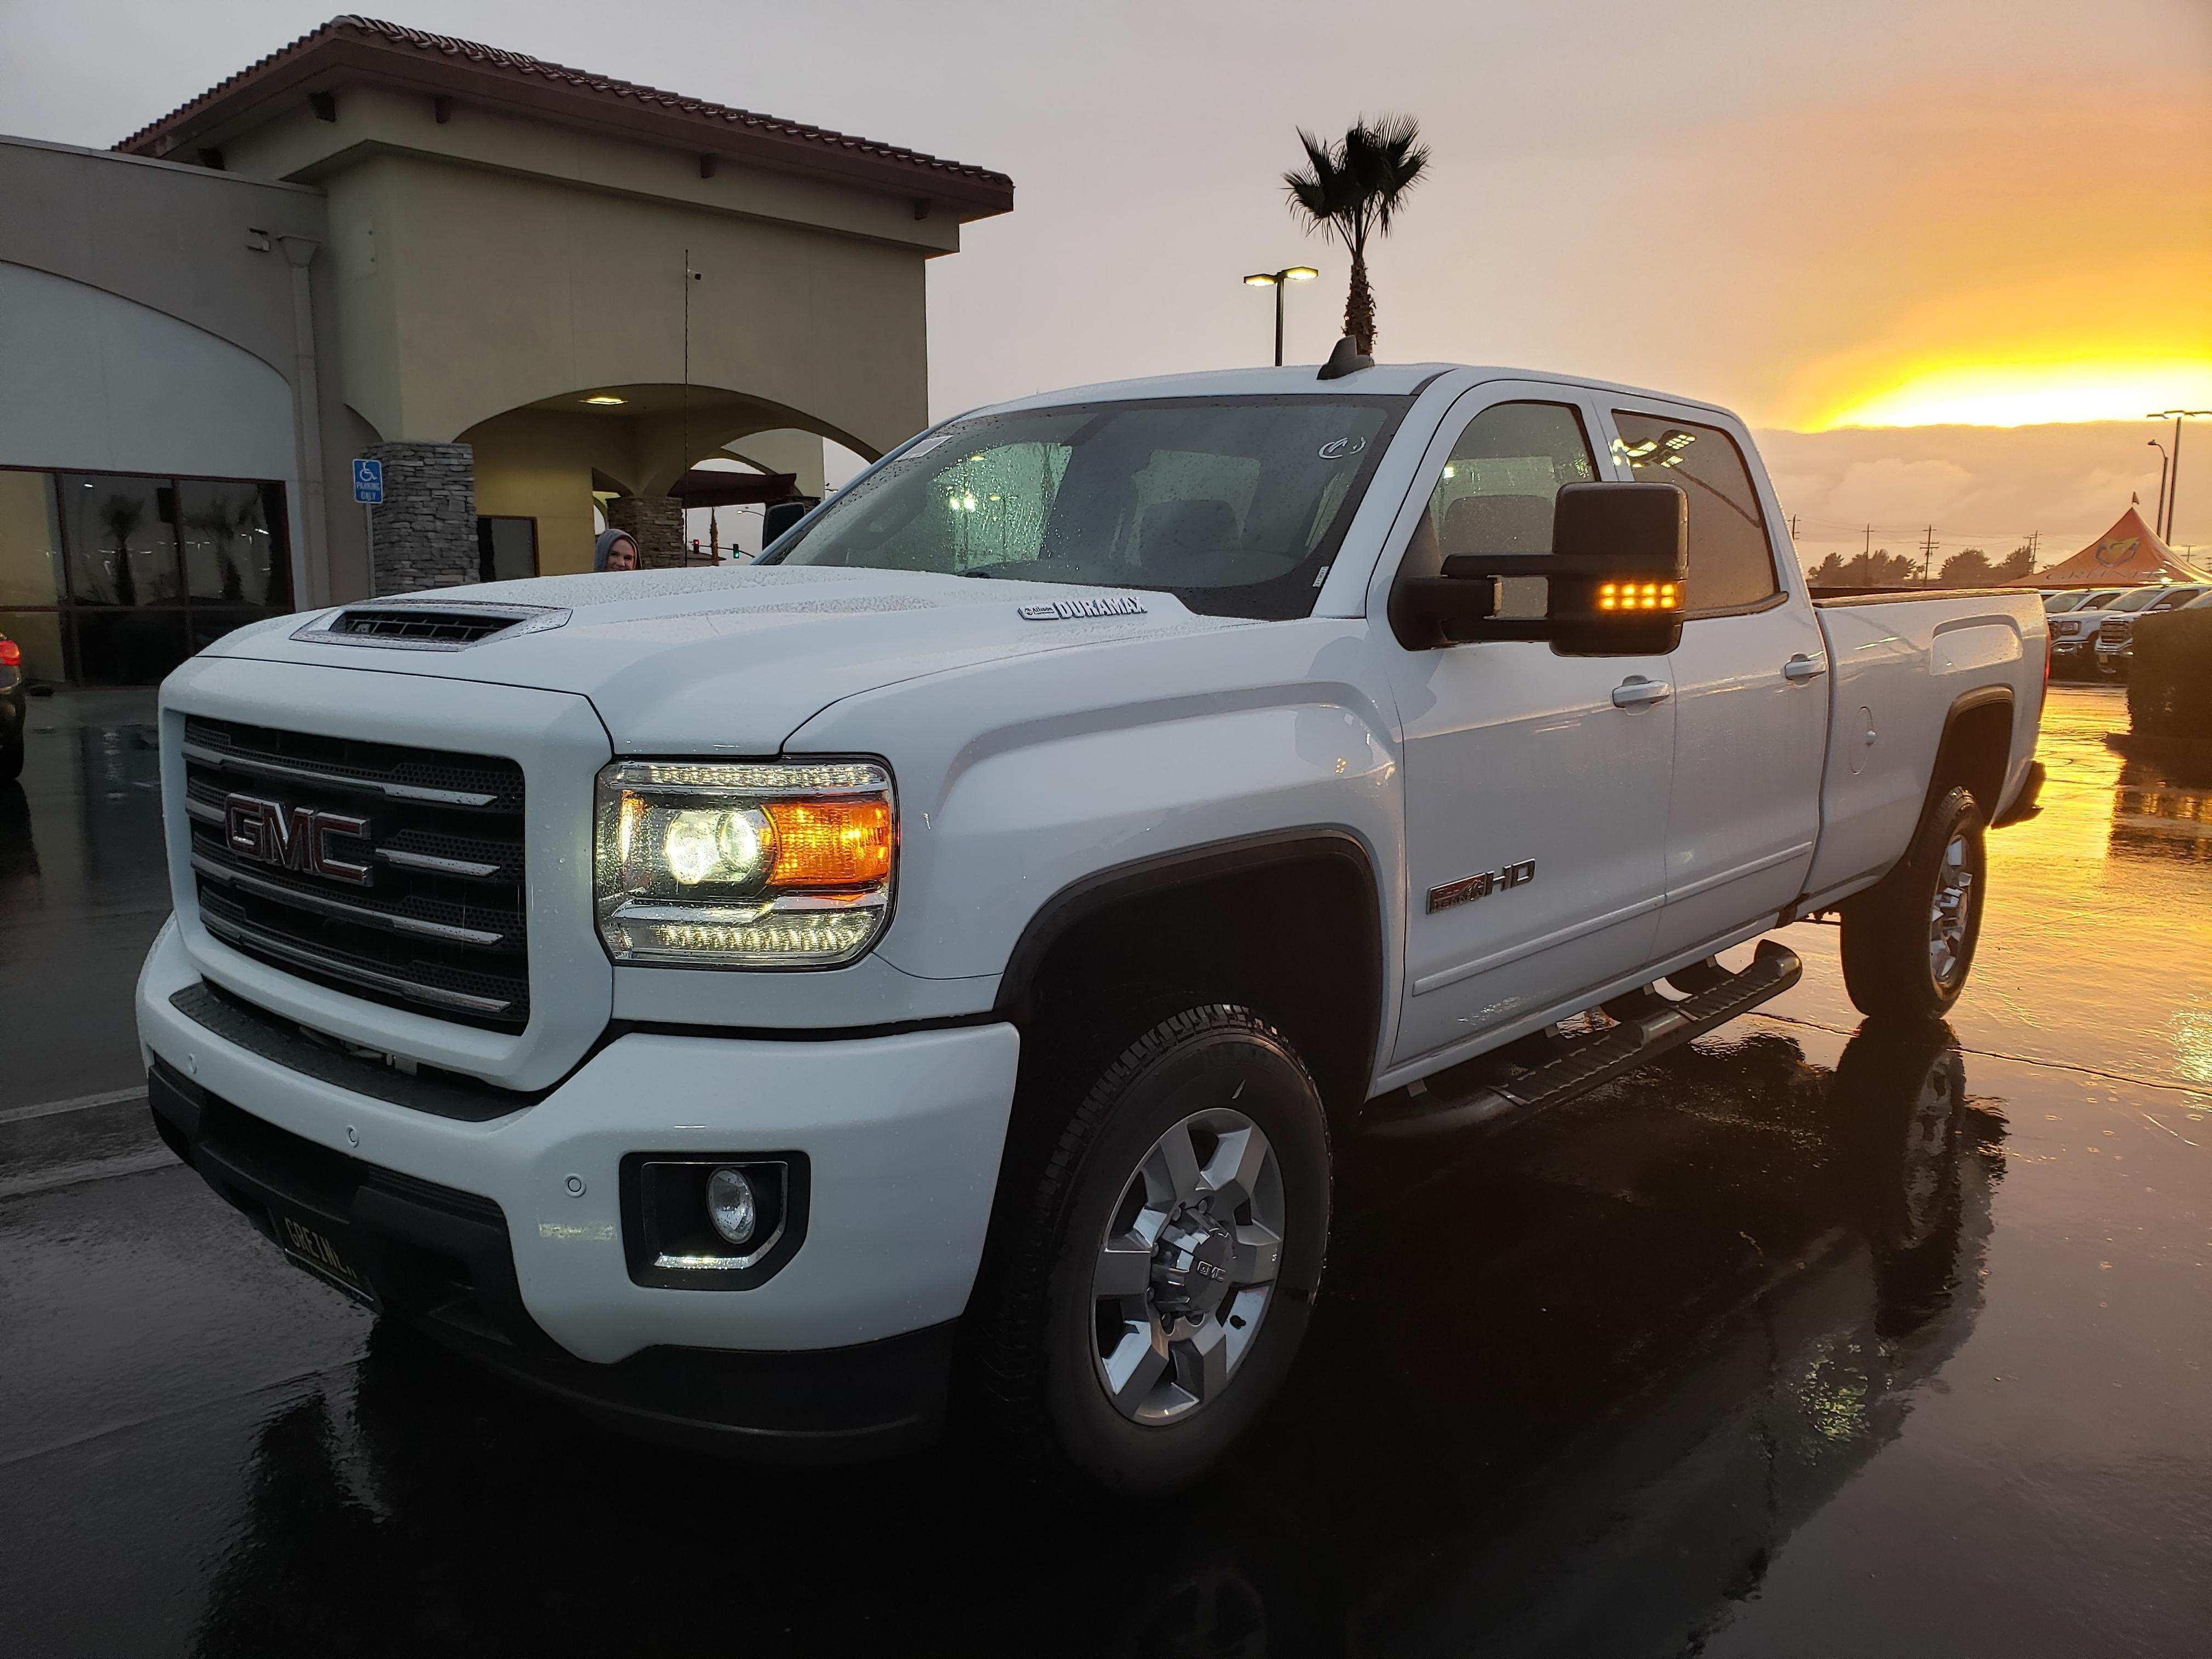 90 The Best 2019 Gmc 3500 Duramax Concept And Review